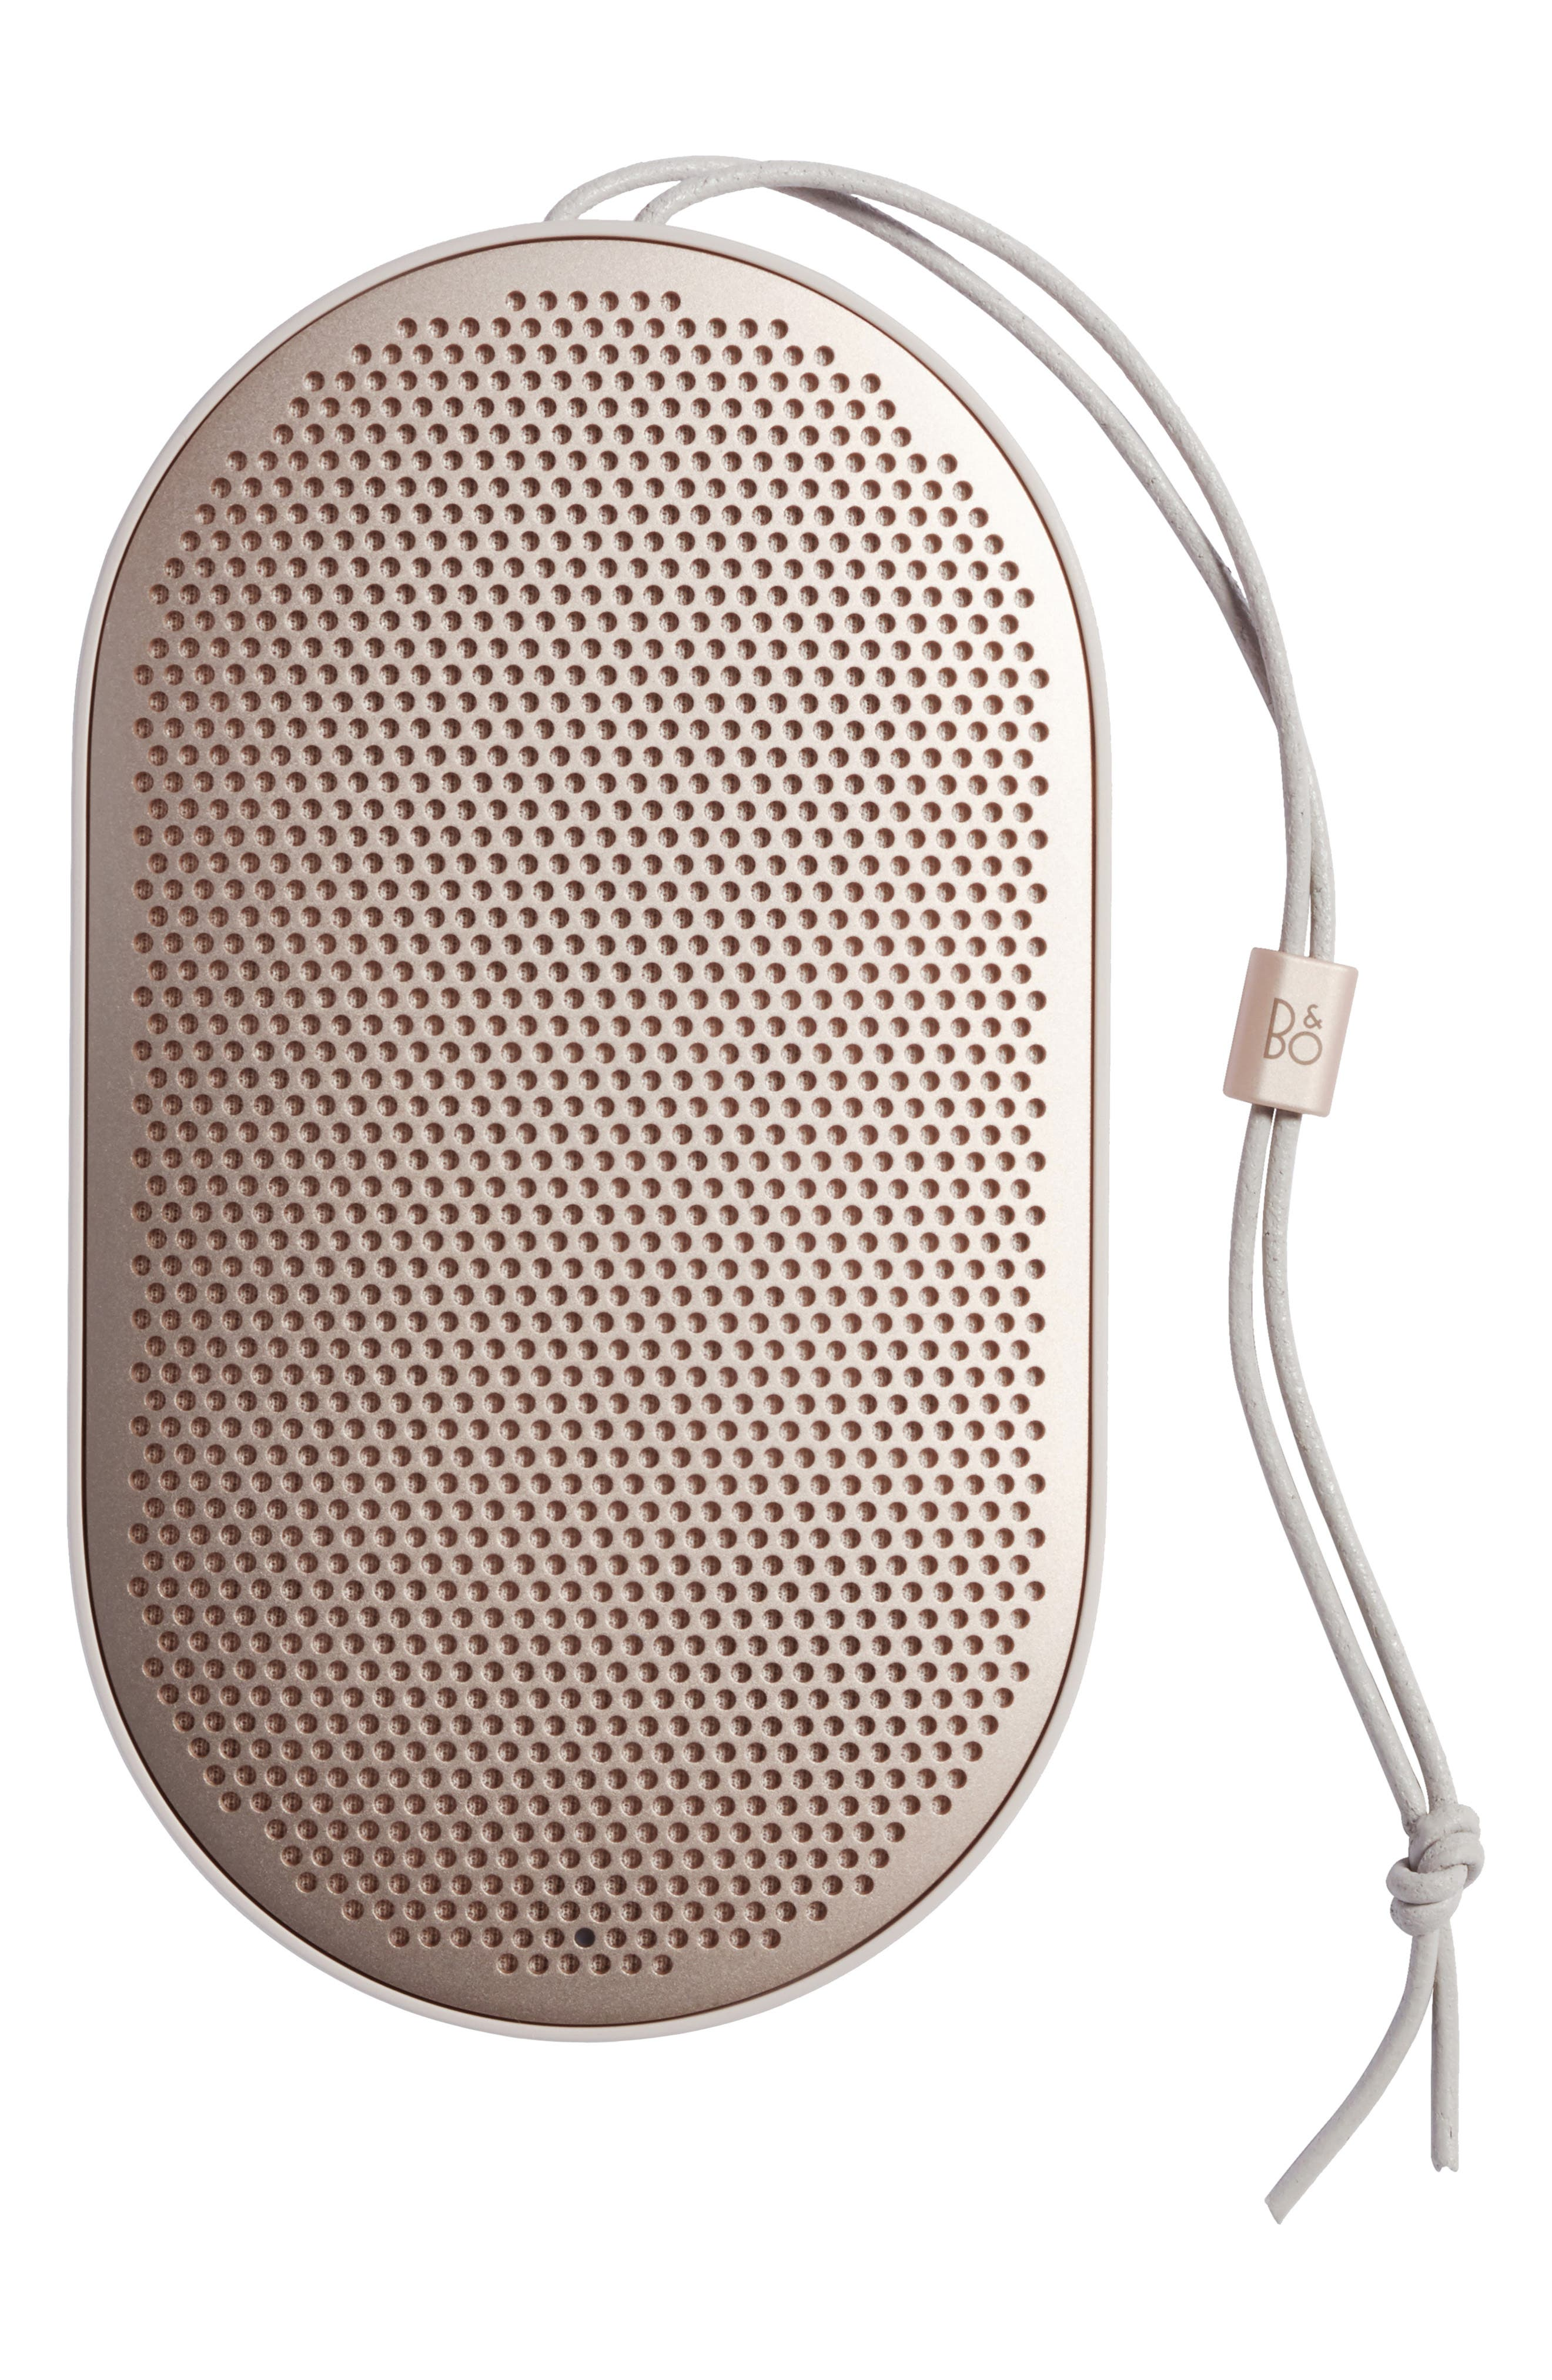 Main Image - B&O PLAY Beoplay P2 Portable Bluetooth® Speaker